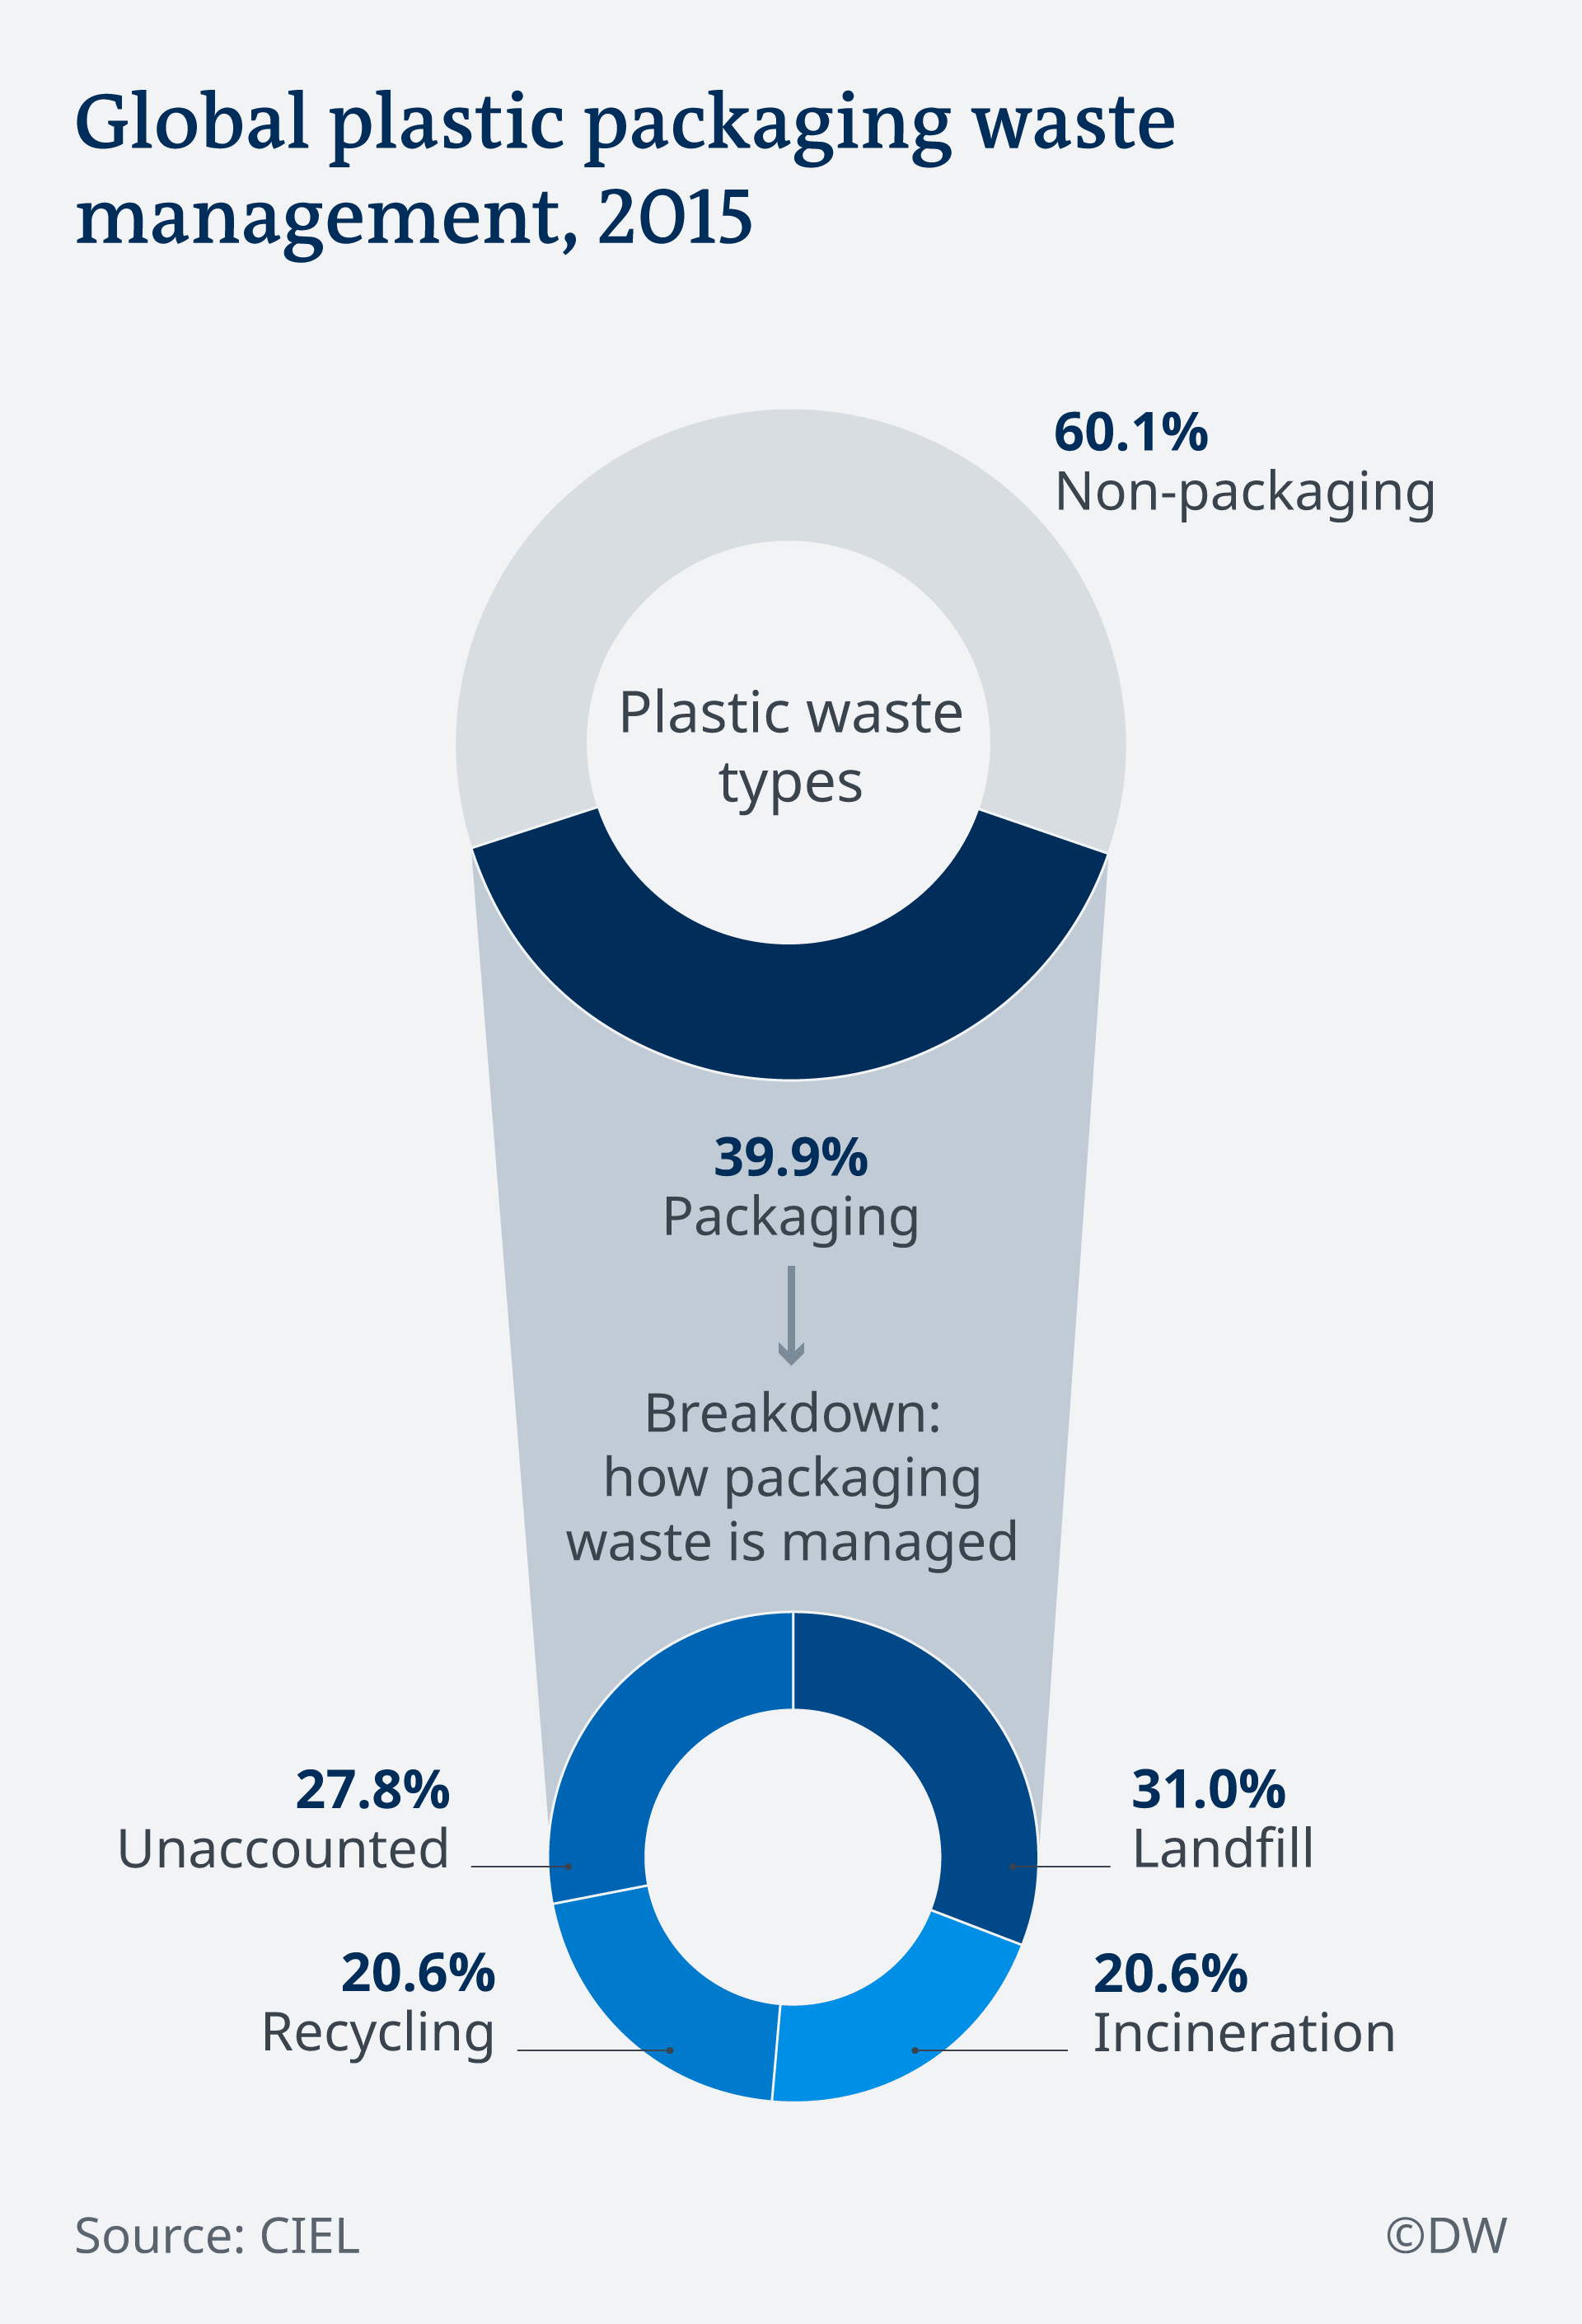 An infographic showing the breakdown of global plastic packaging waste management in 2015